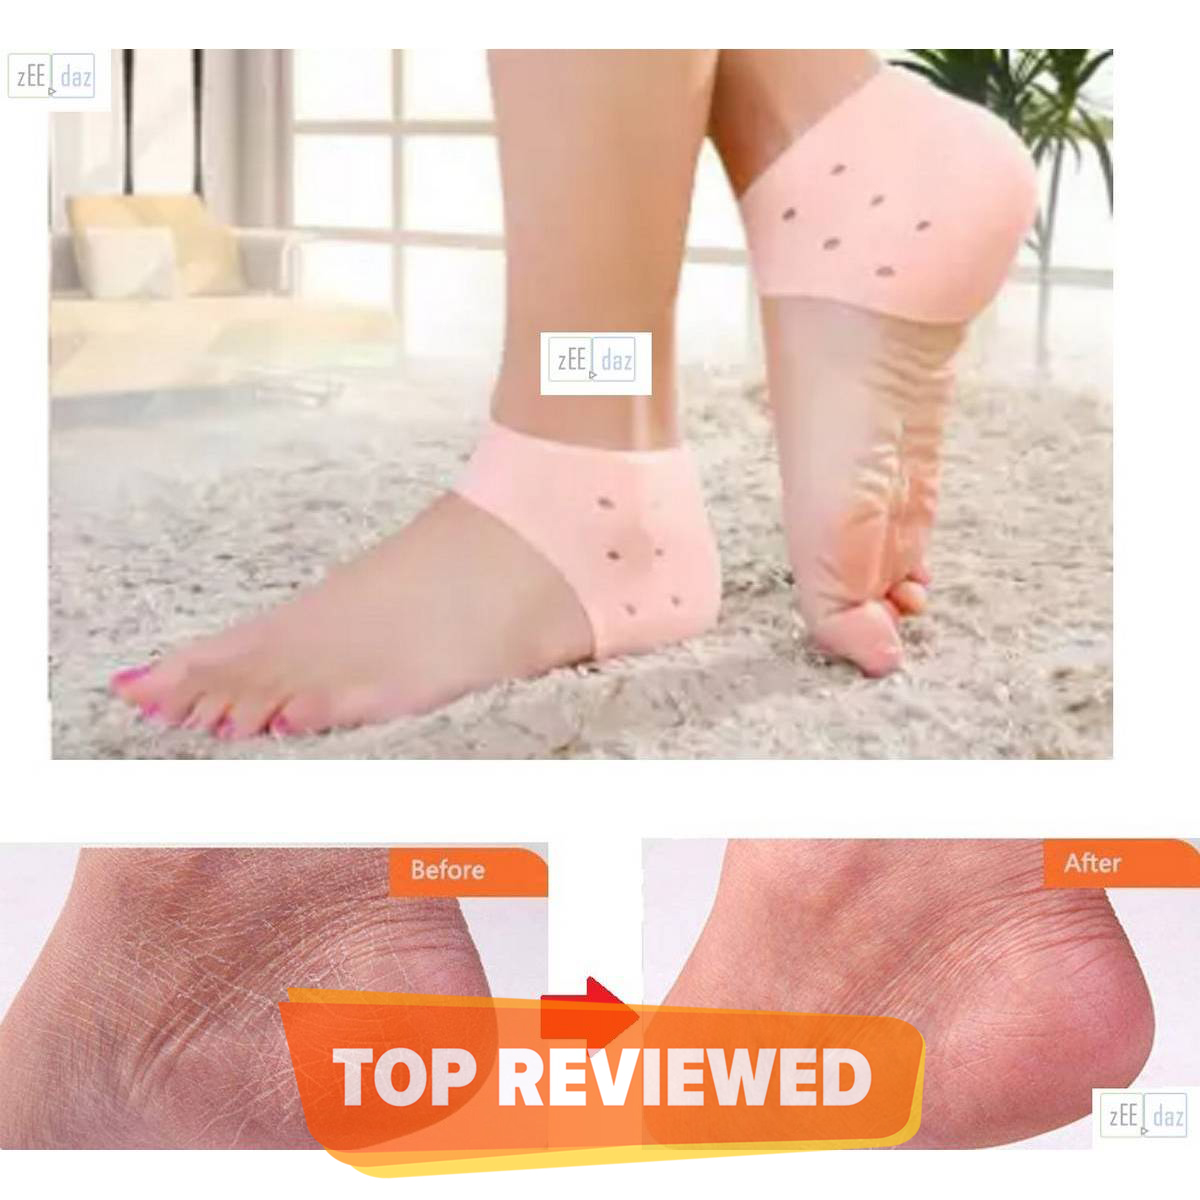 Soft Silicon Pain Relief Moisturizing Heel Anti Crack Pad for Men and Women, Silicone Heel Protectors Heel Guards & Heel Cups to Repair Dry Cracked Heel _ 1 Pair